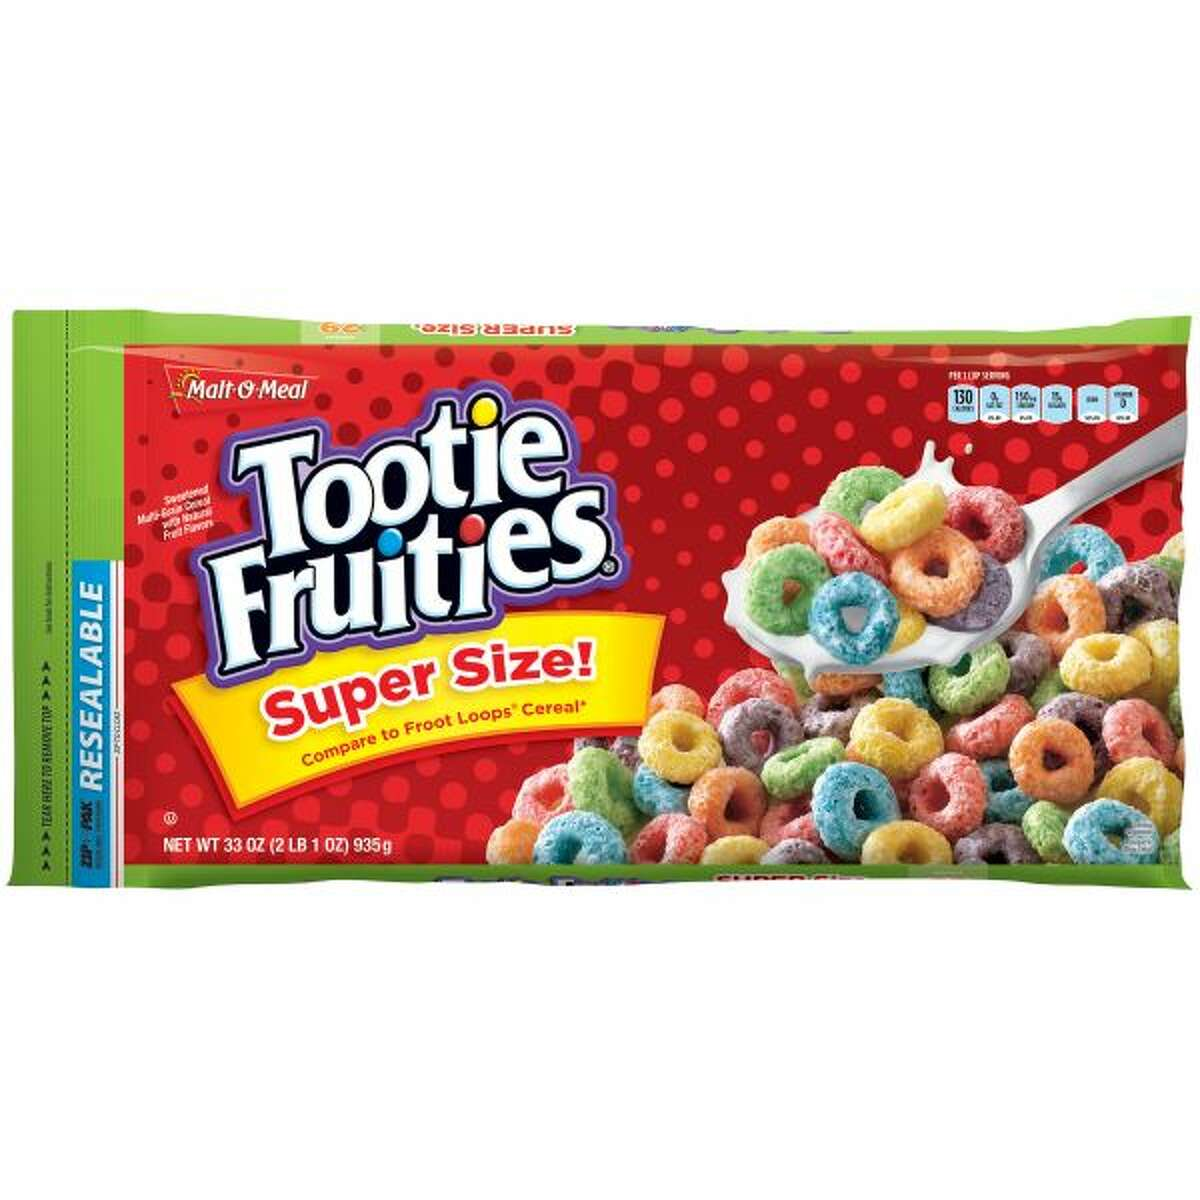 23) Malt-O-Meal Tootie Fruities Cereal Serving size: 1 cup (32g) Total sugar: 15g Calories: 130 Fat: 1g